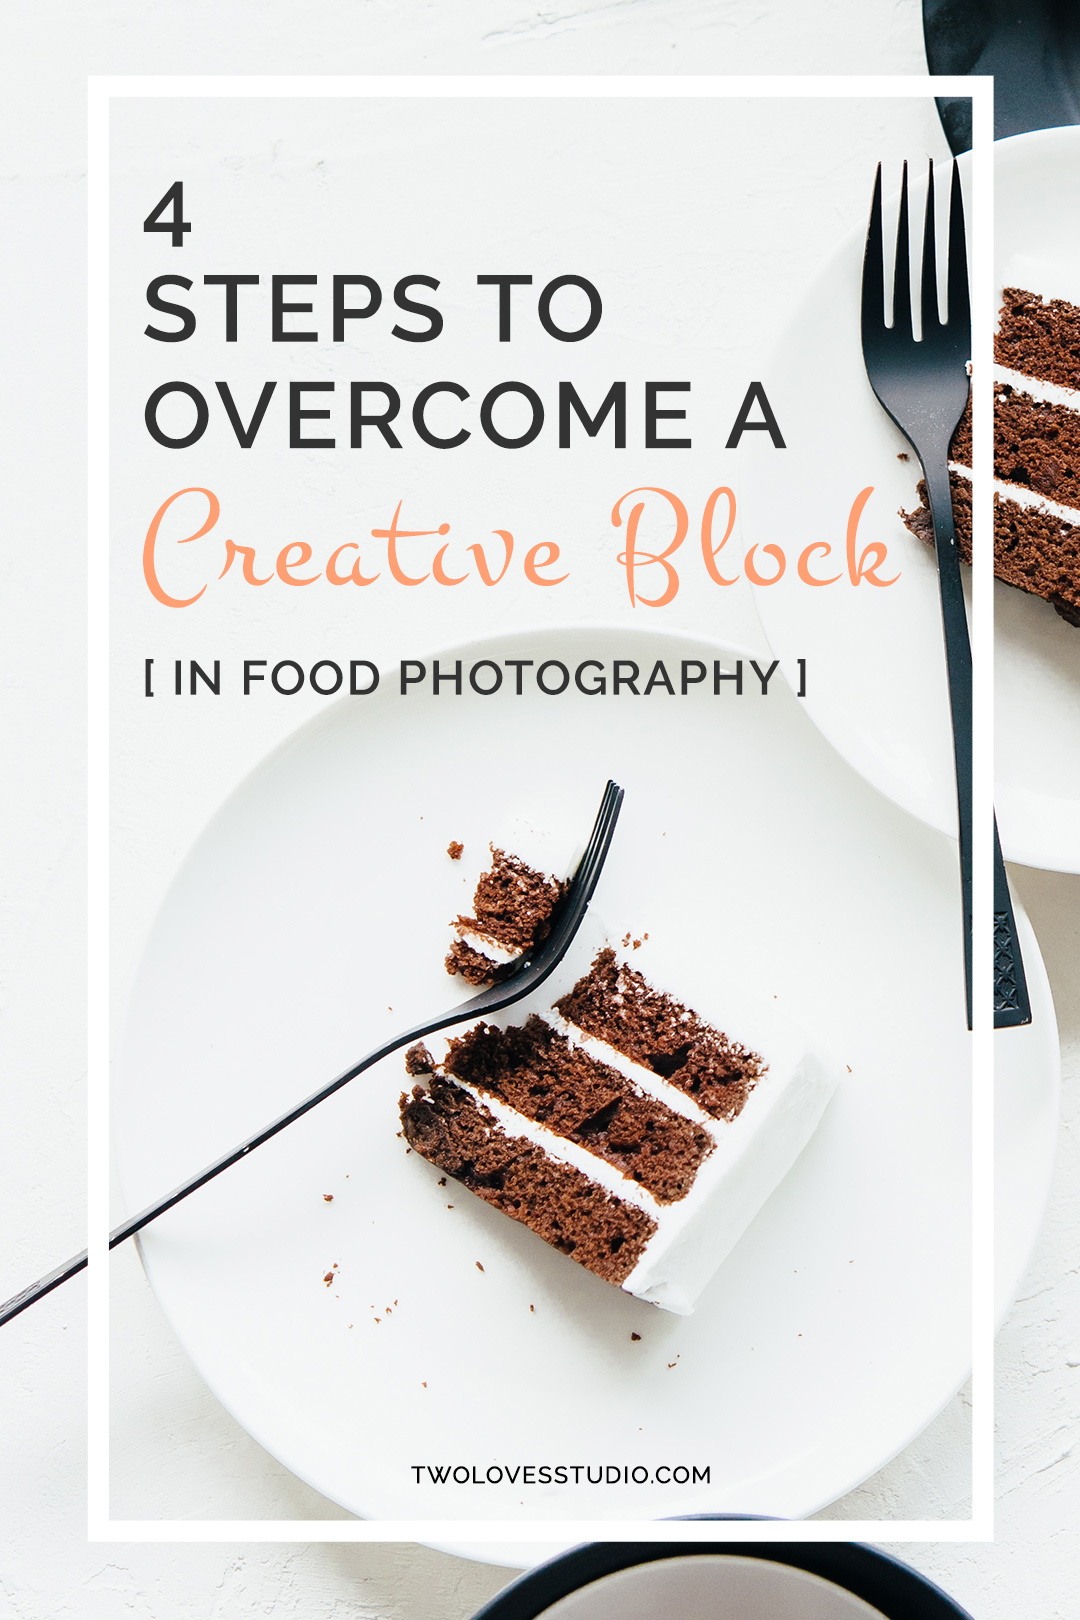 4 Steps to Overcome a Creative Block in Food Photography | What do you do if our arch nemesis strikes whilst we are shooting? Even worse, you're on set and the client is watching you struggle! Check out these 4 steps that'll have you back on your photography game in no time.